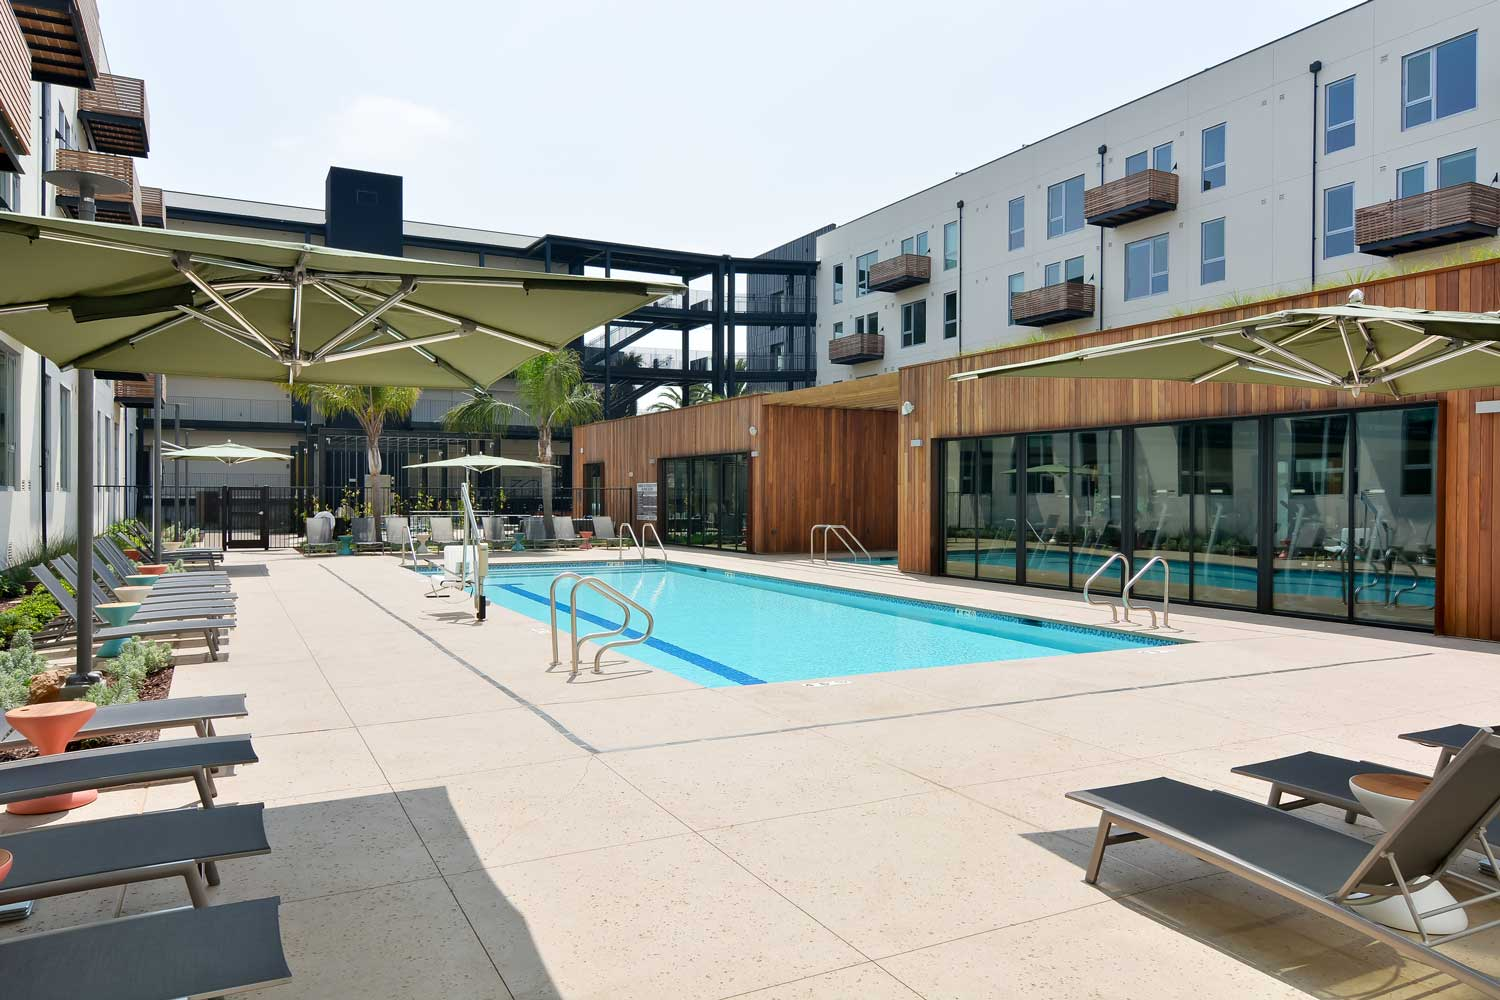 Pet-Friendly Apartments in Union City California - The Union Flats Swimming Pool